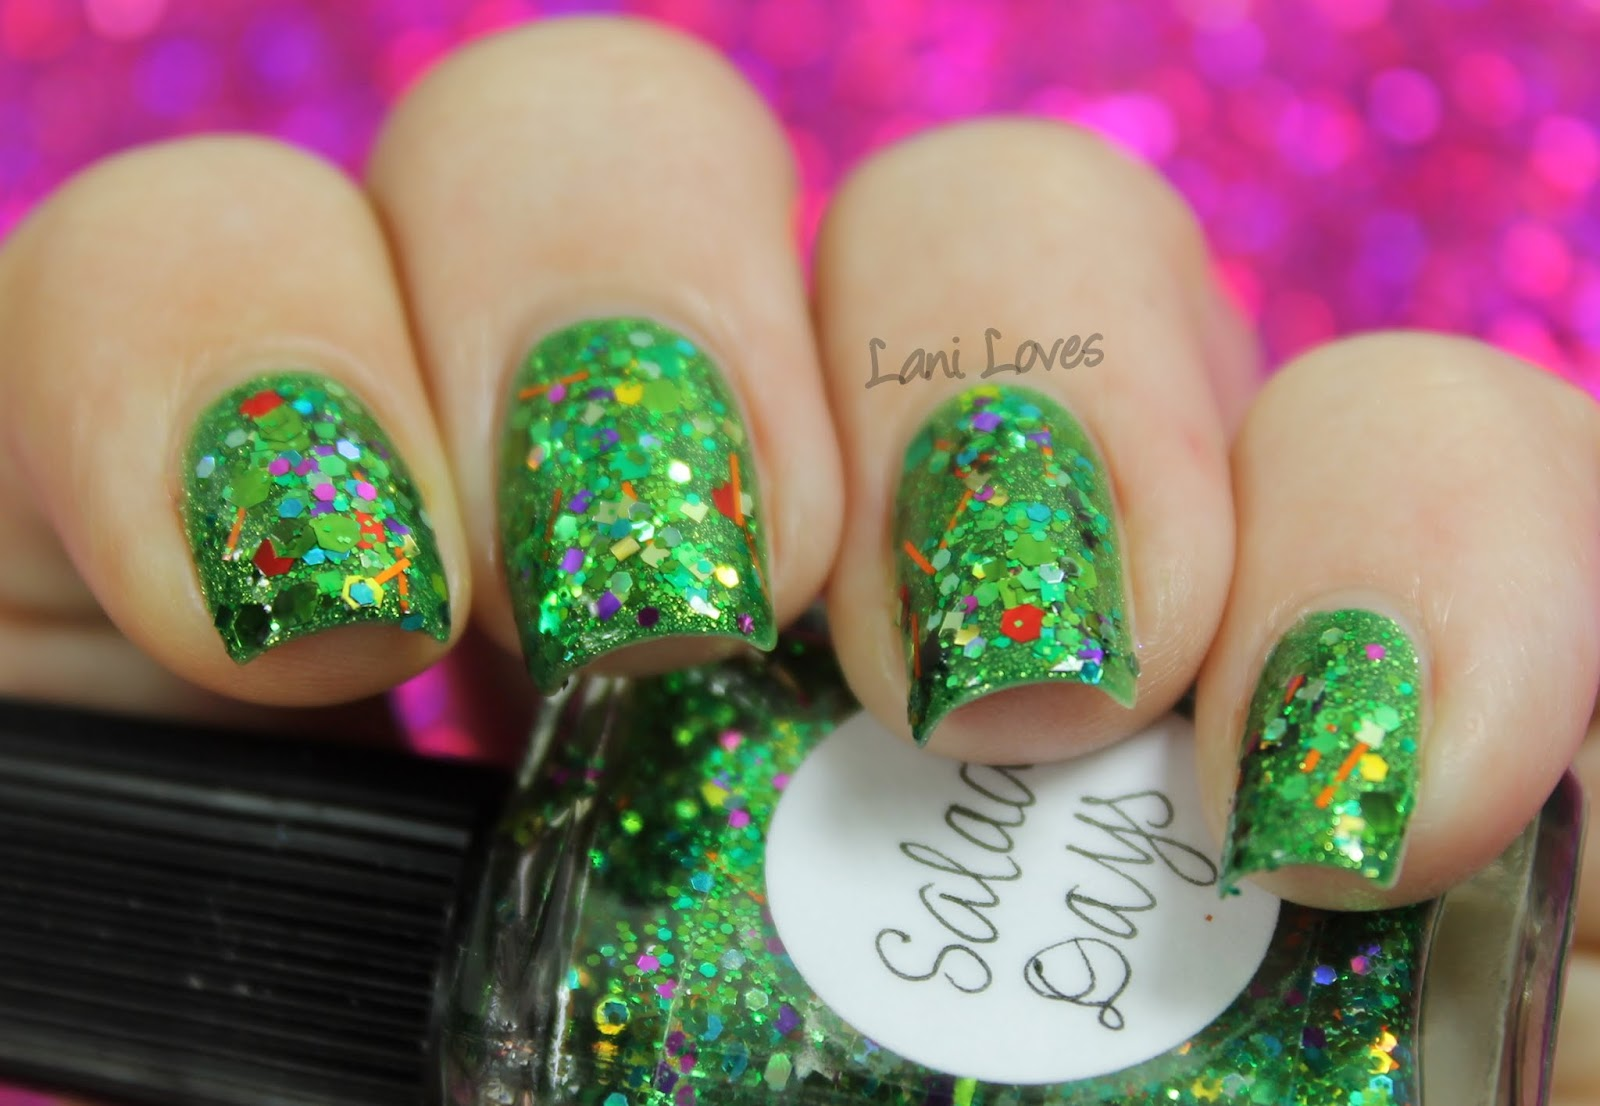 Lynnderella Salad Days nail polish swatch